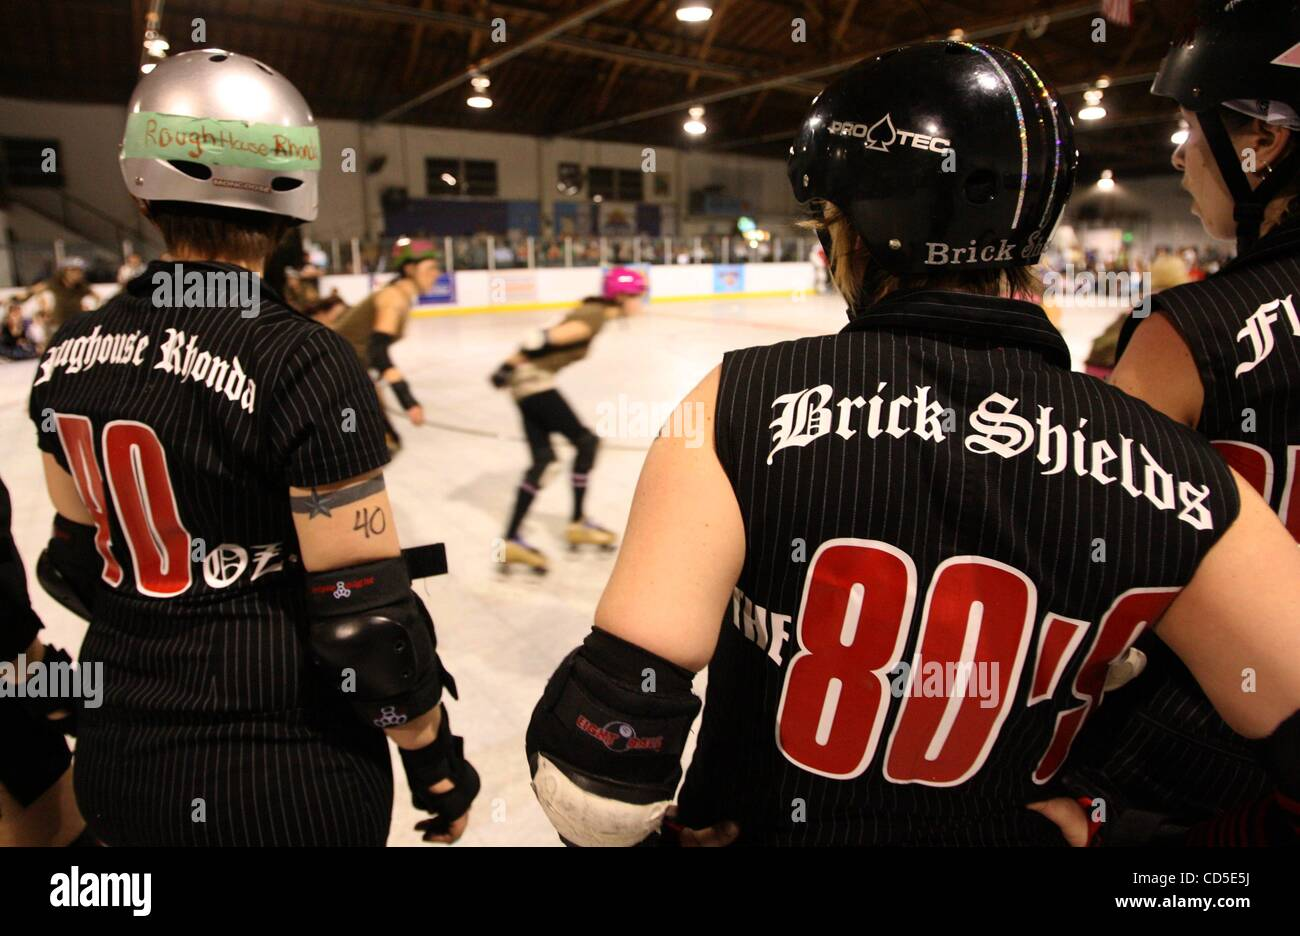 Oakland Outlaws Roundhouse Rhonda and Brick Shields check